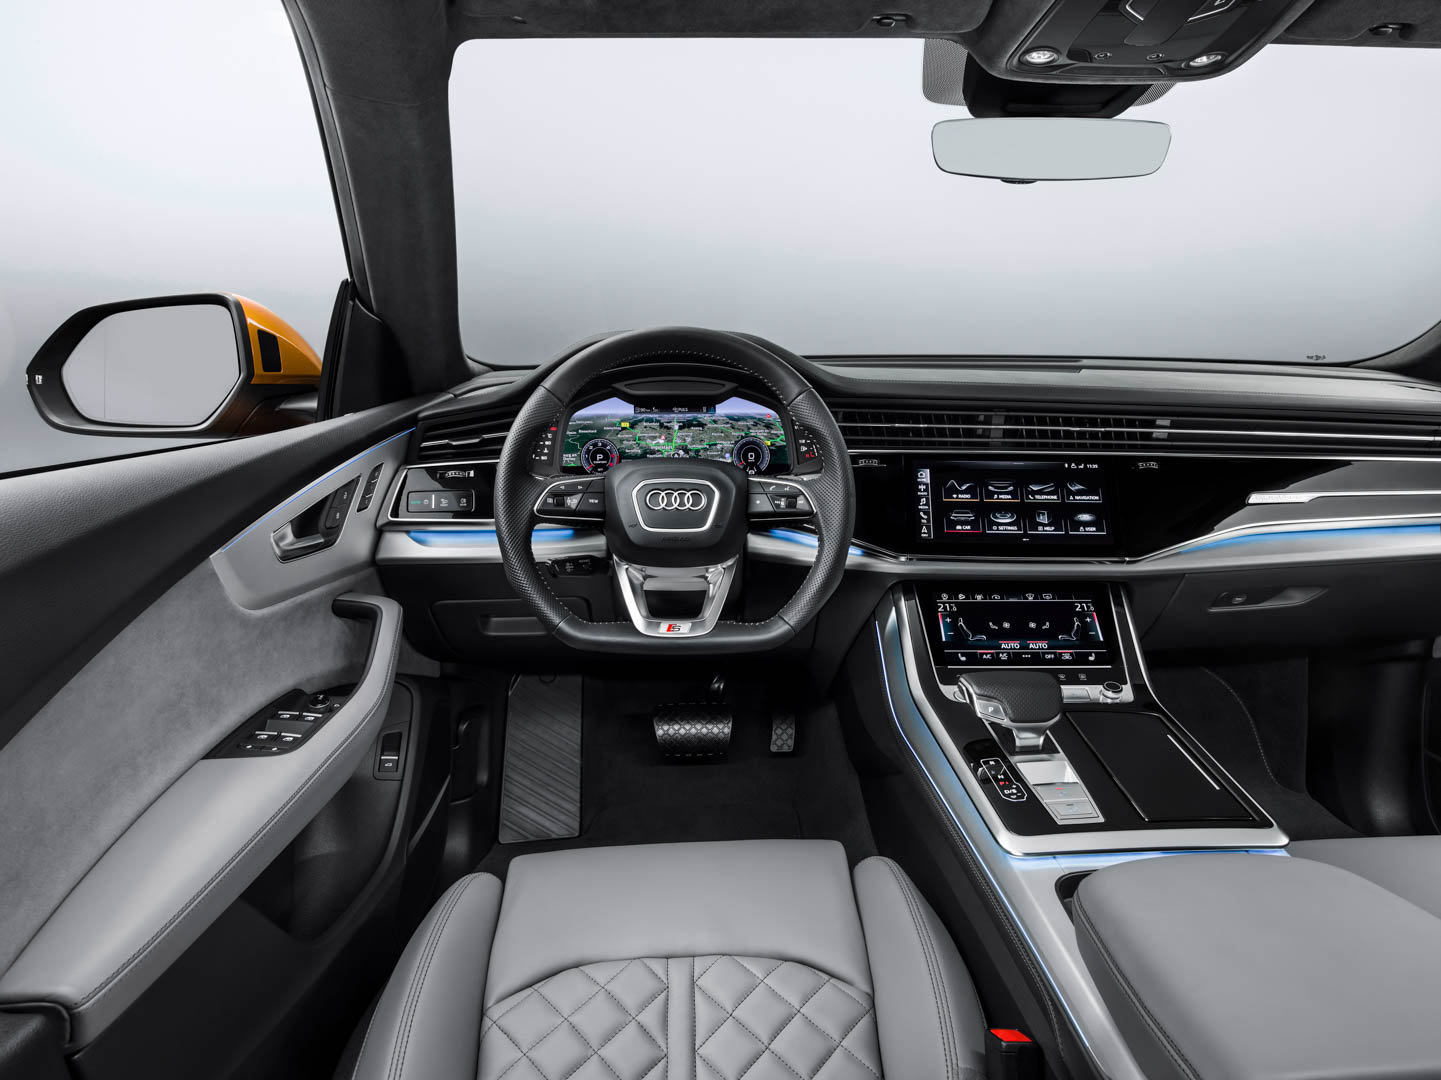 The Challenge For Interior Design Team Was To Take Cabin Of Audi A8 And Make It Work An Suv